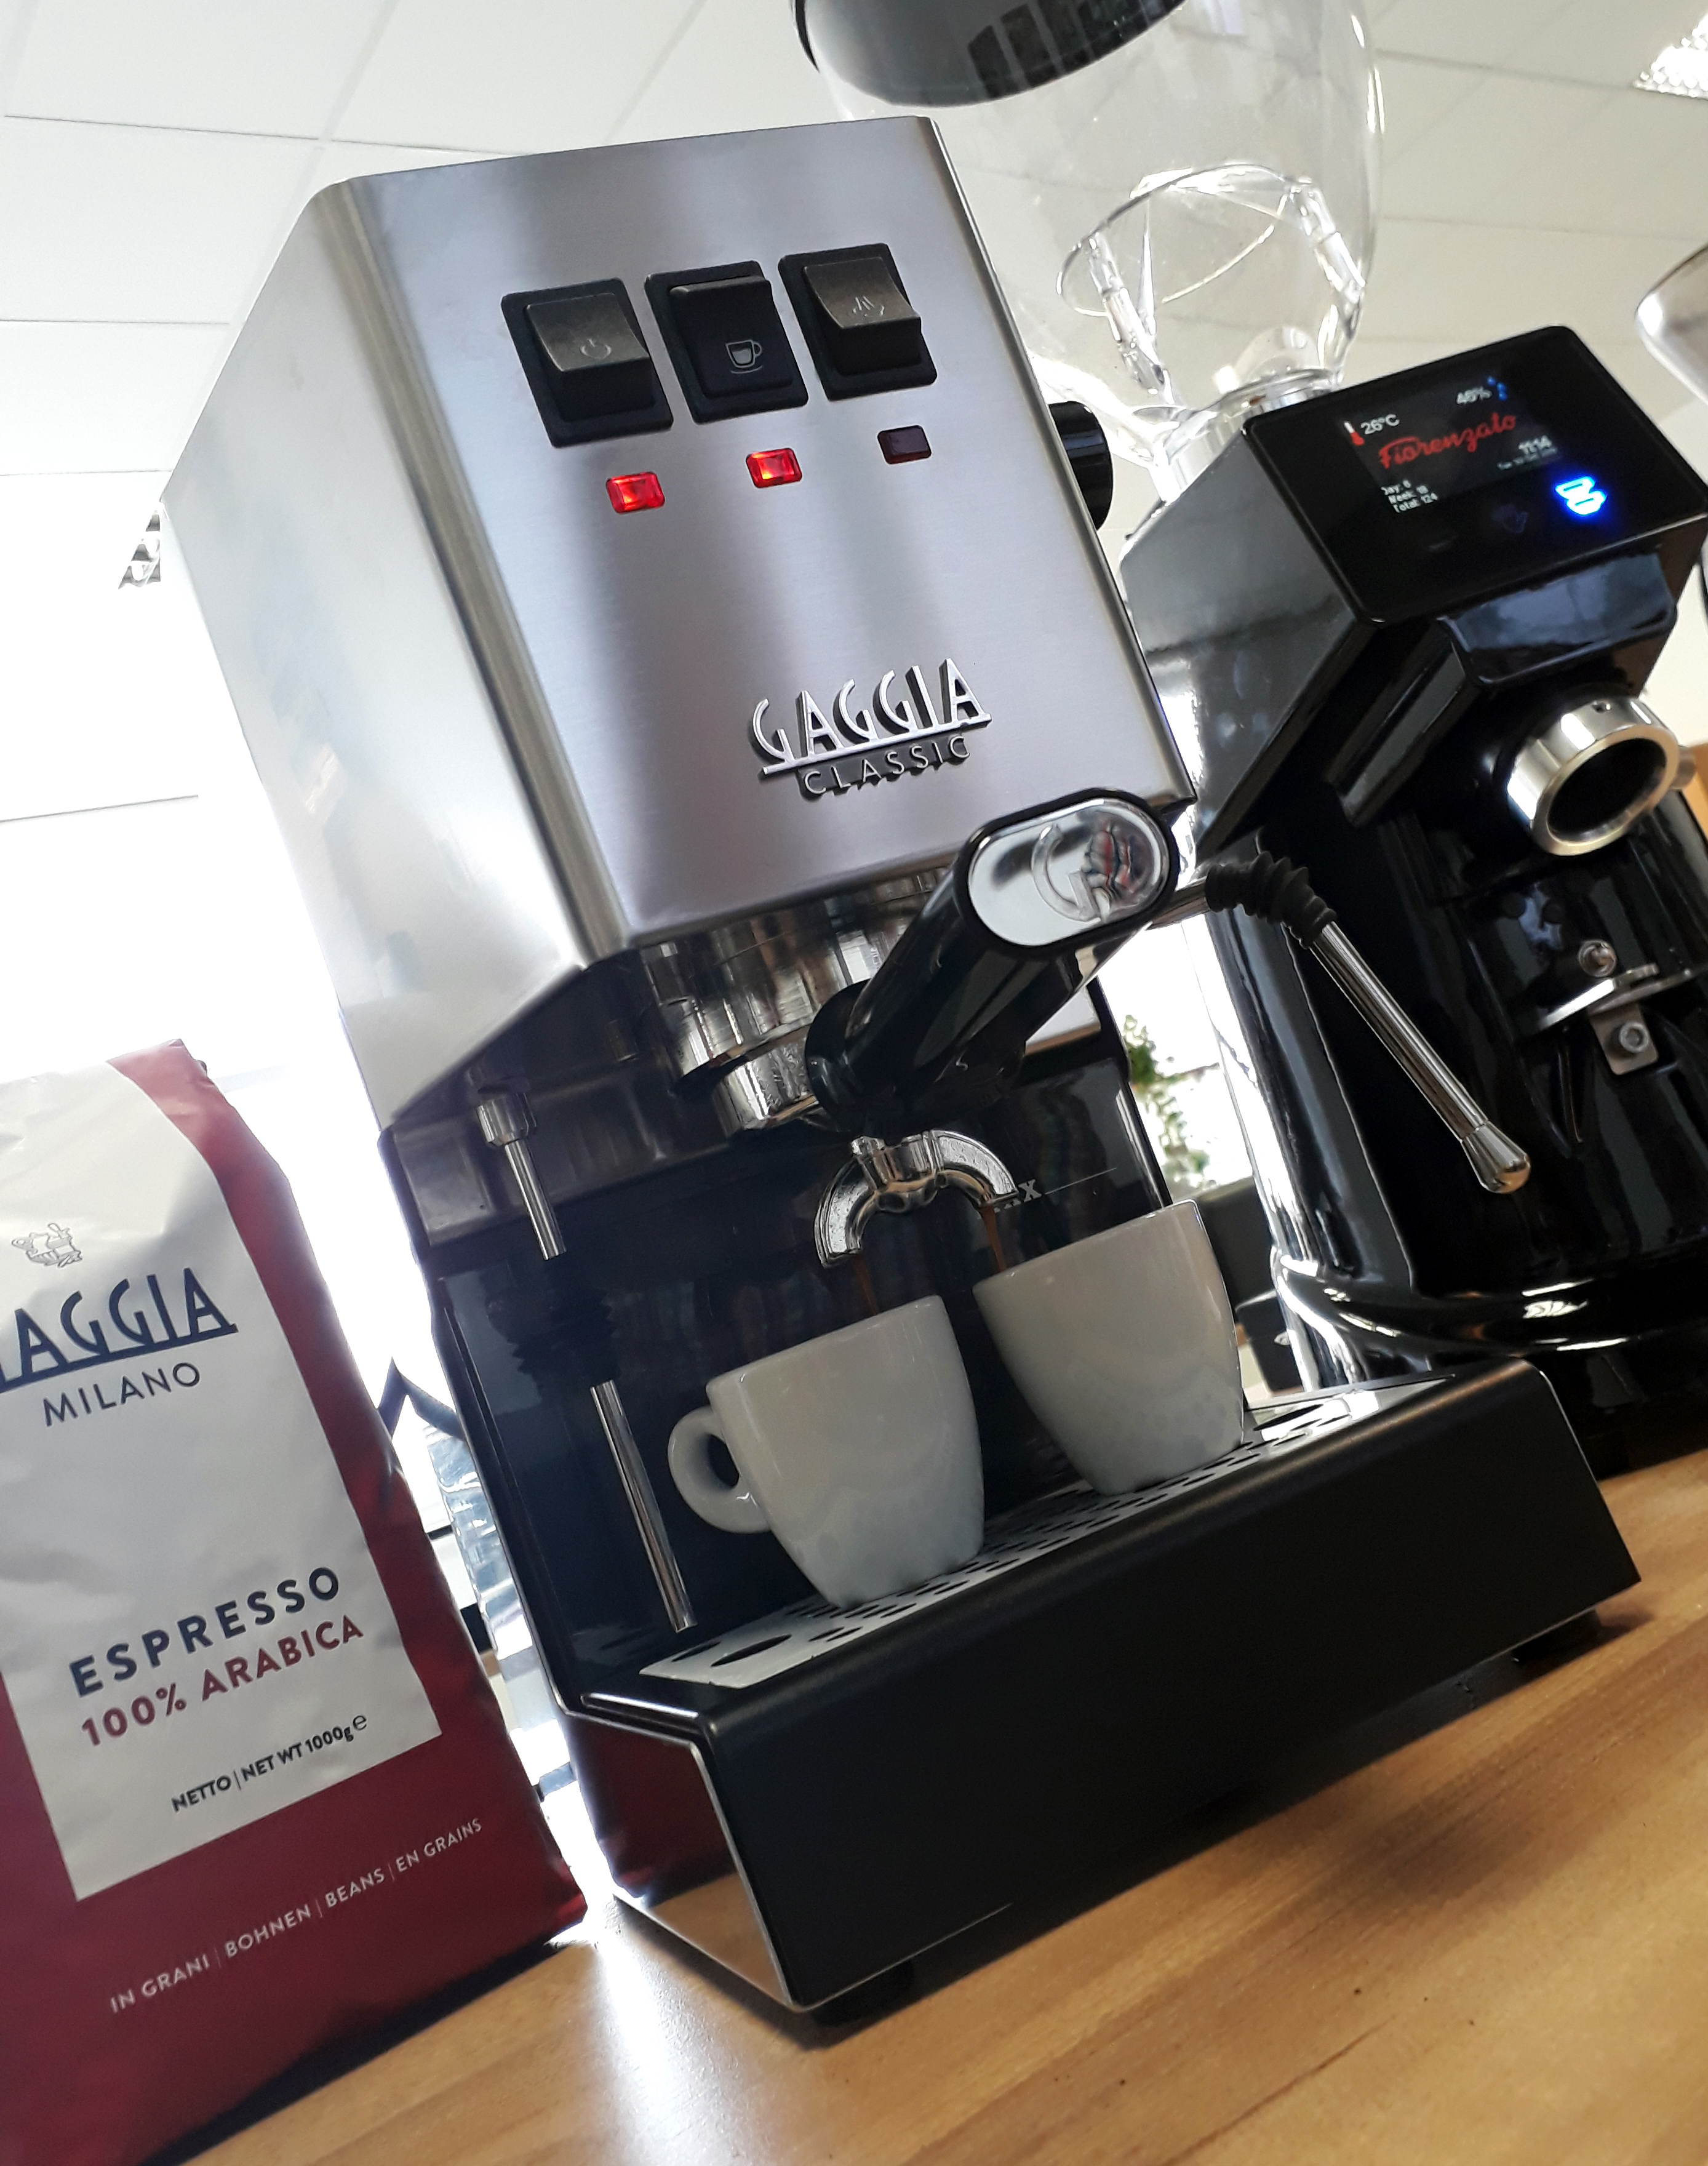 Gaggia Classic 2018 review